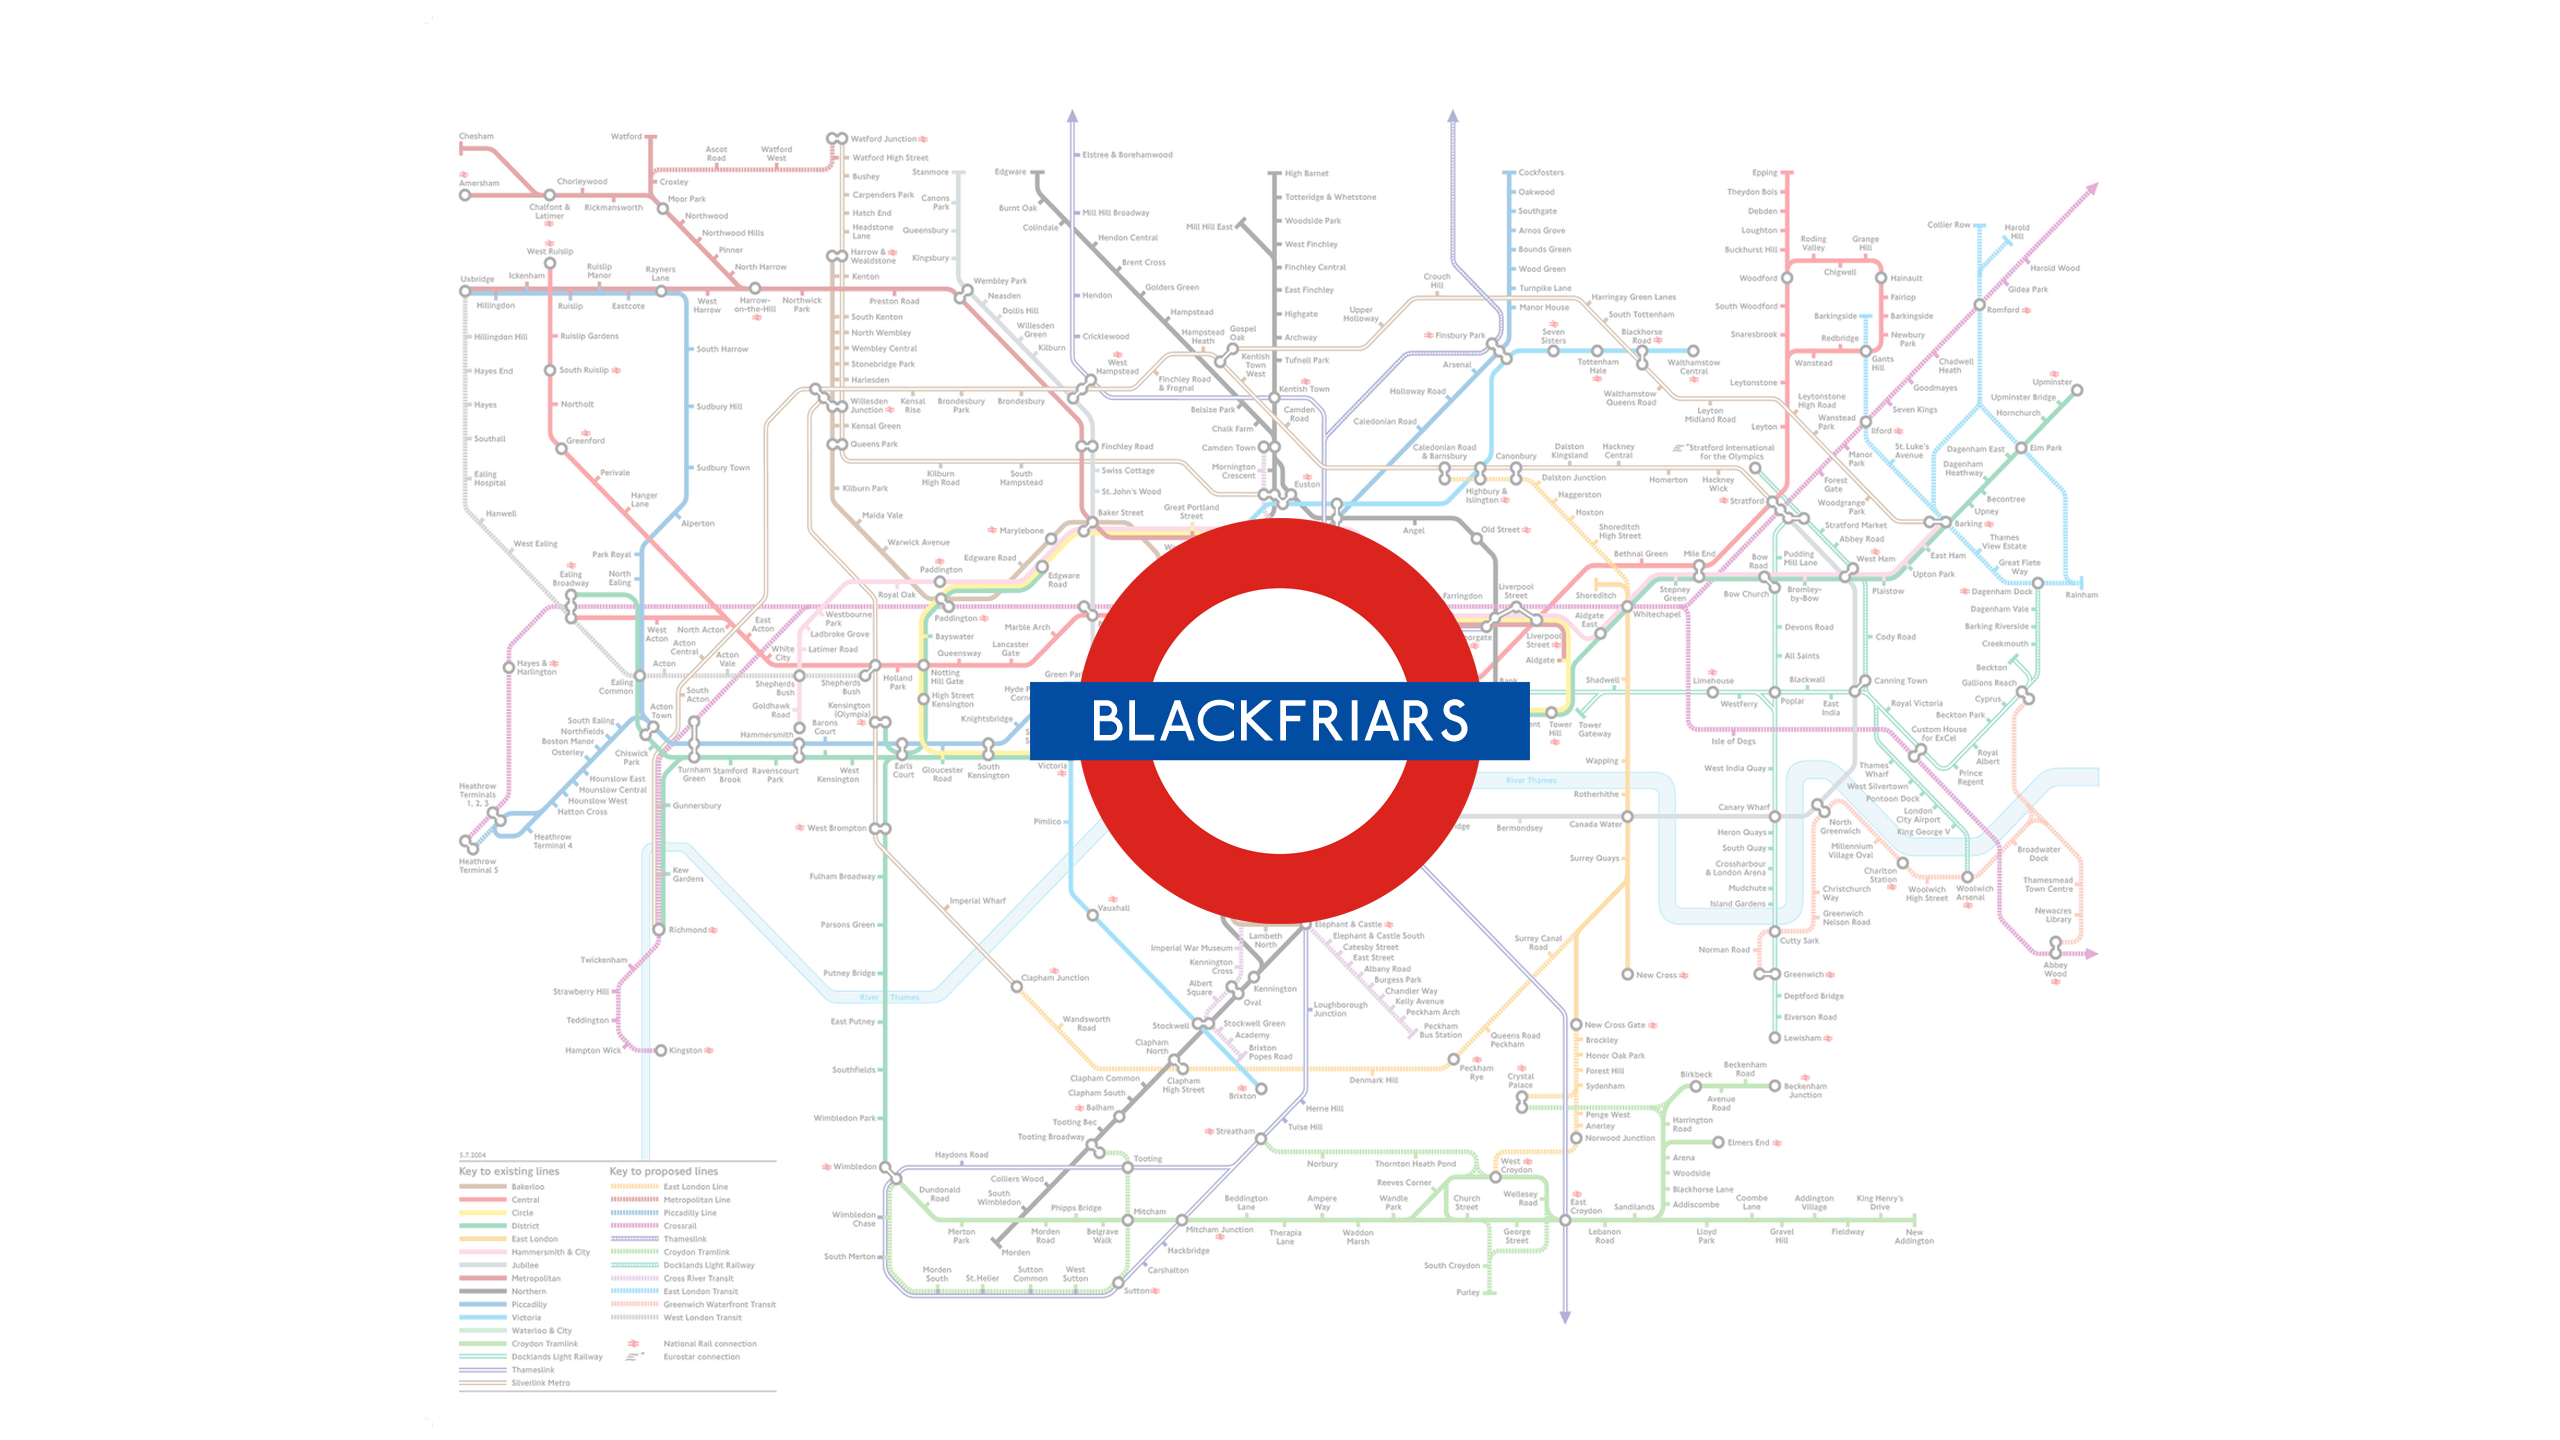 Blackfriars (Map)